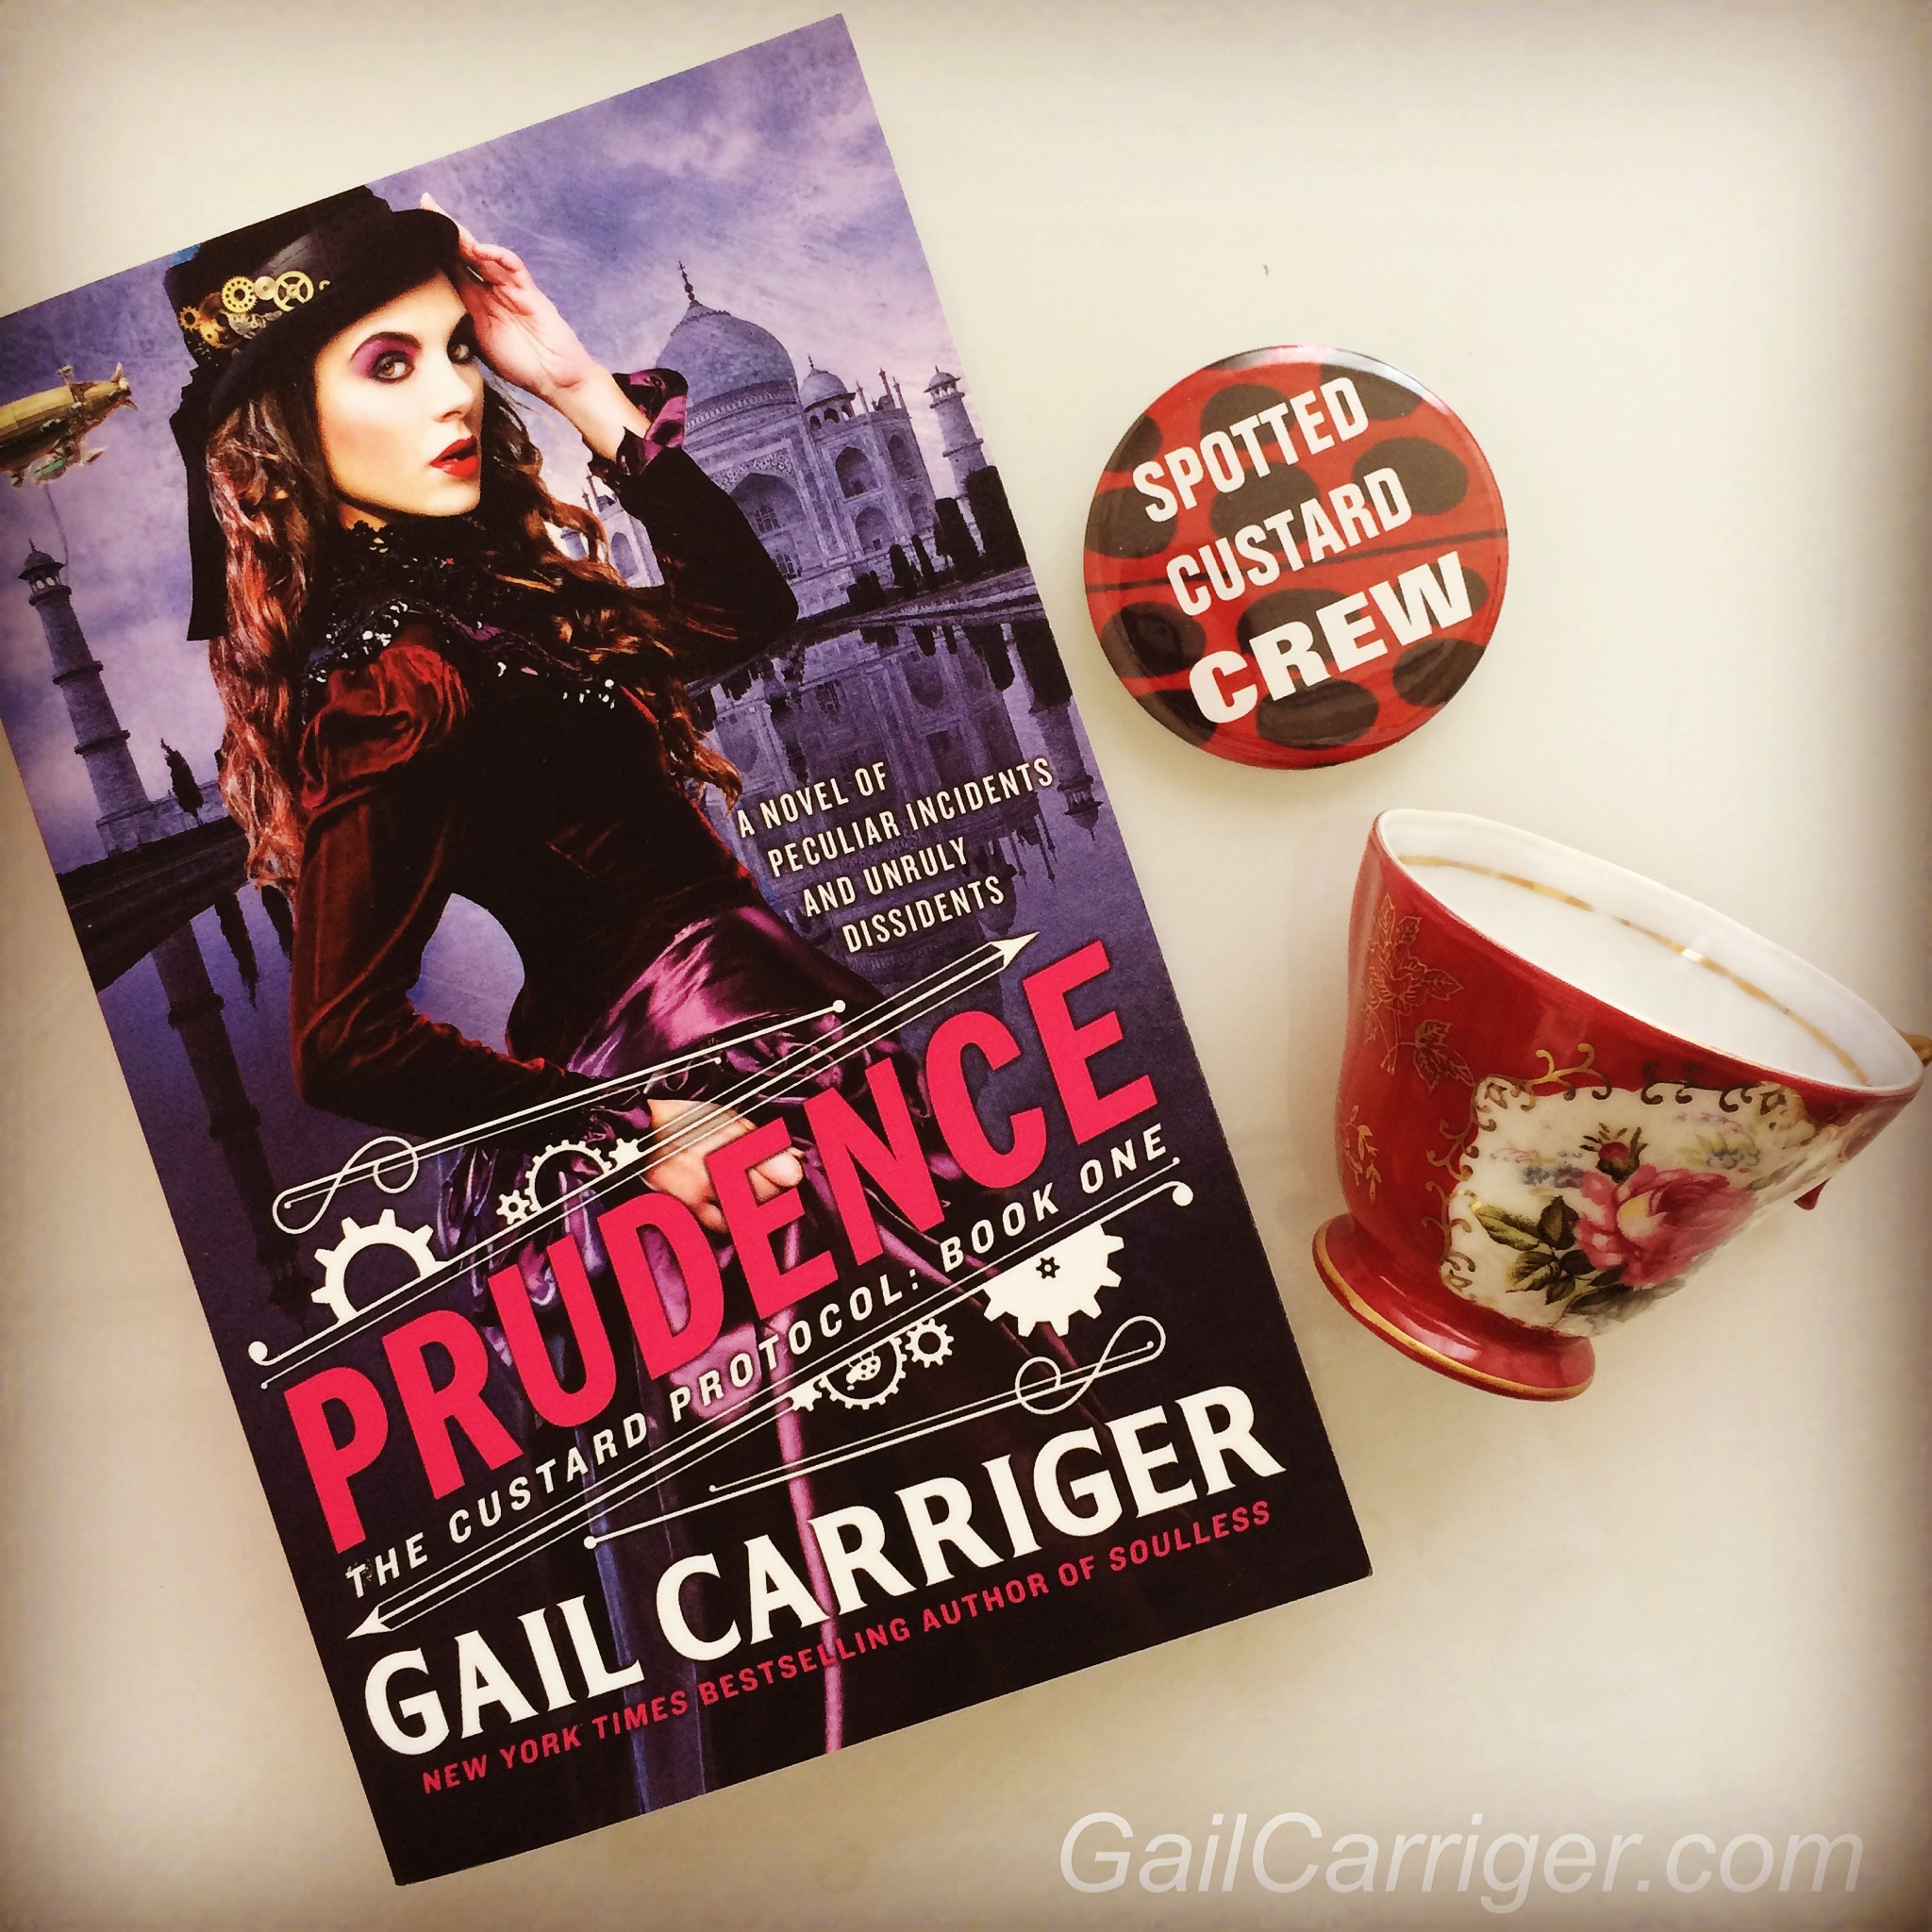 Prudence Teacup Pin Merch Spotted Custard Crew Gail Carriger